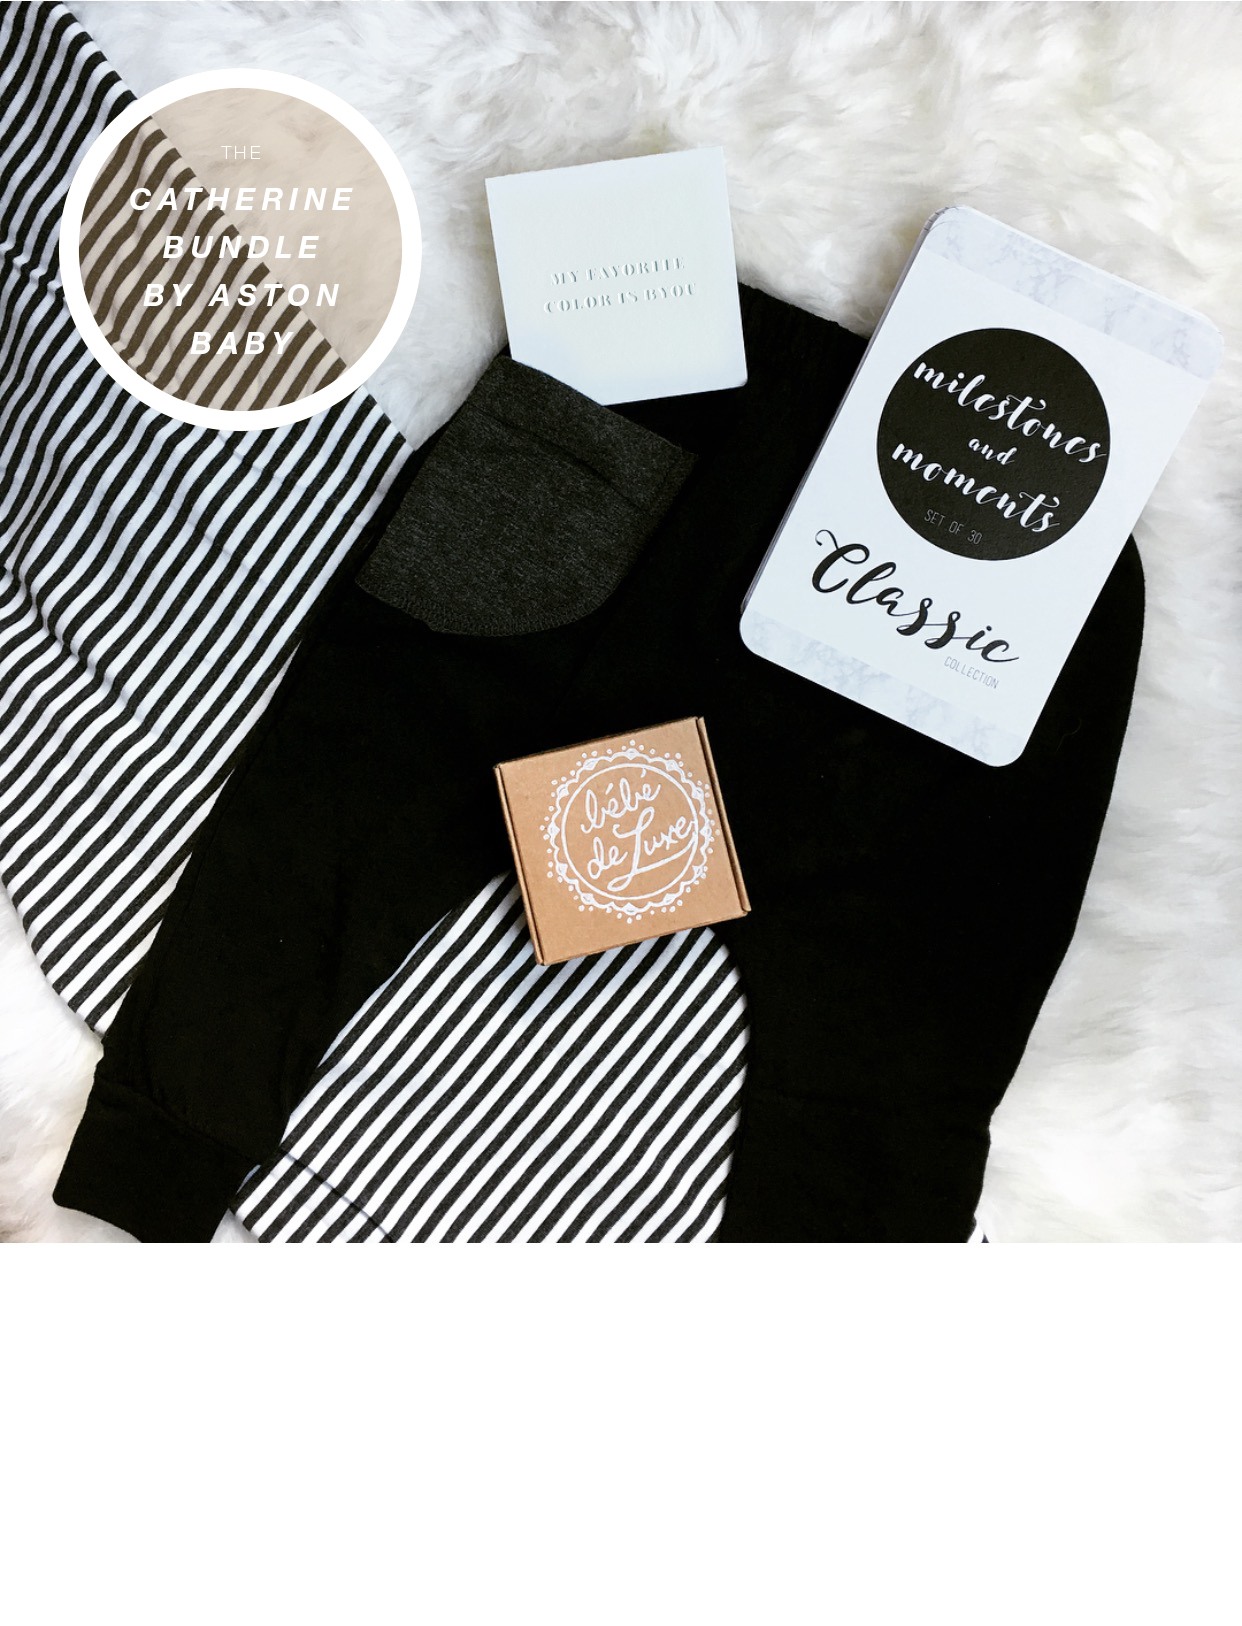 The Monochrome Baby Gift Bundle by Aston Baby was curated by our Catherine Lowe with favorites for her Samuel.